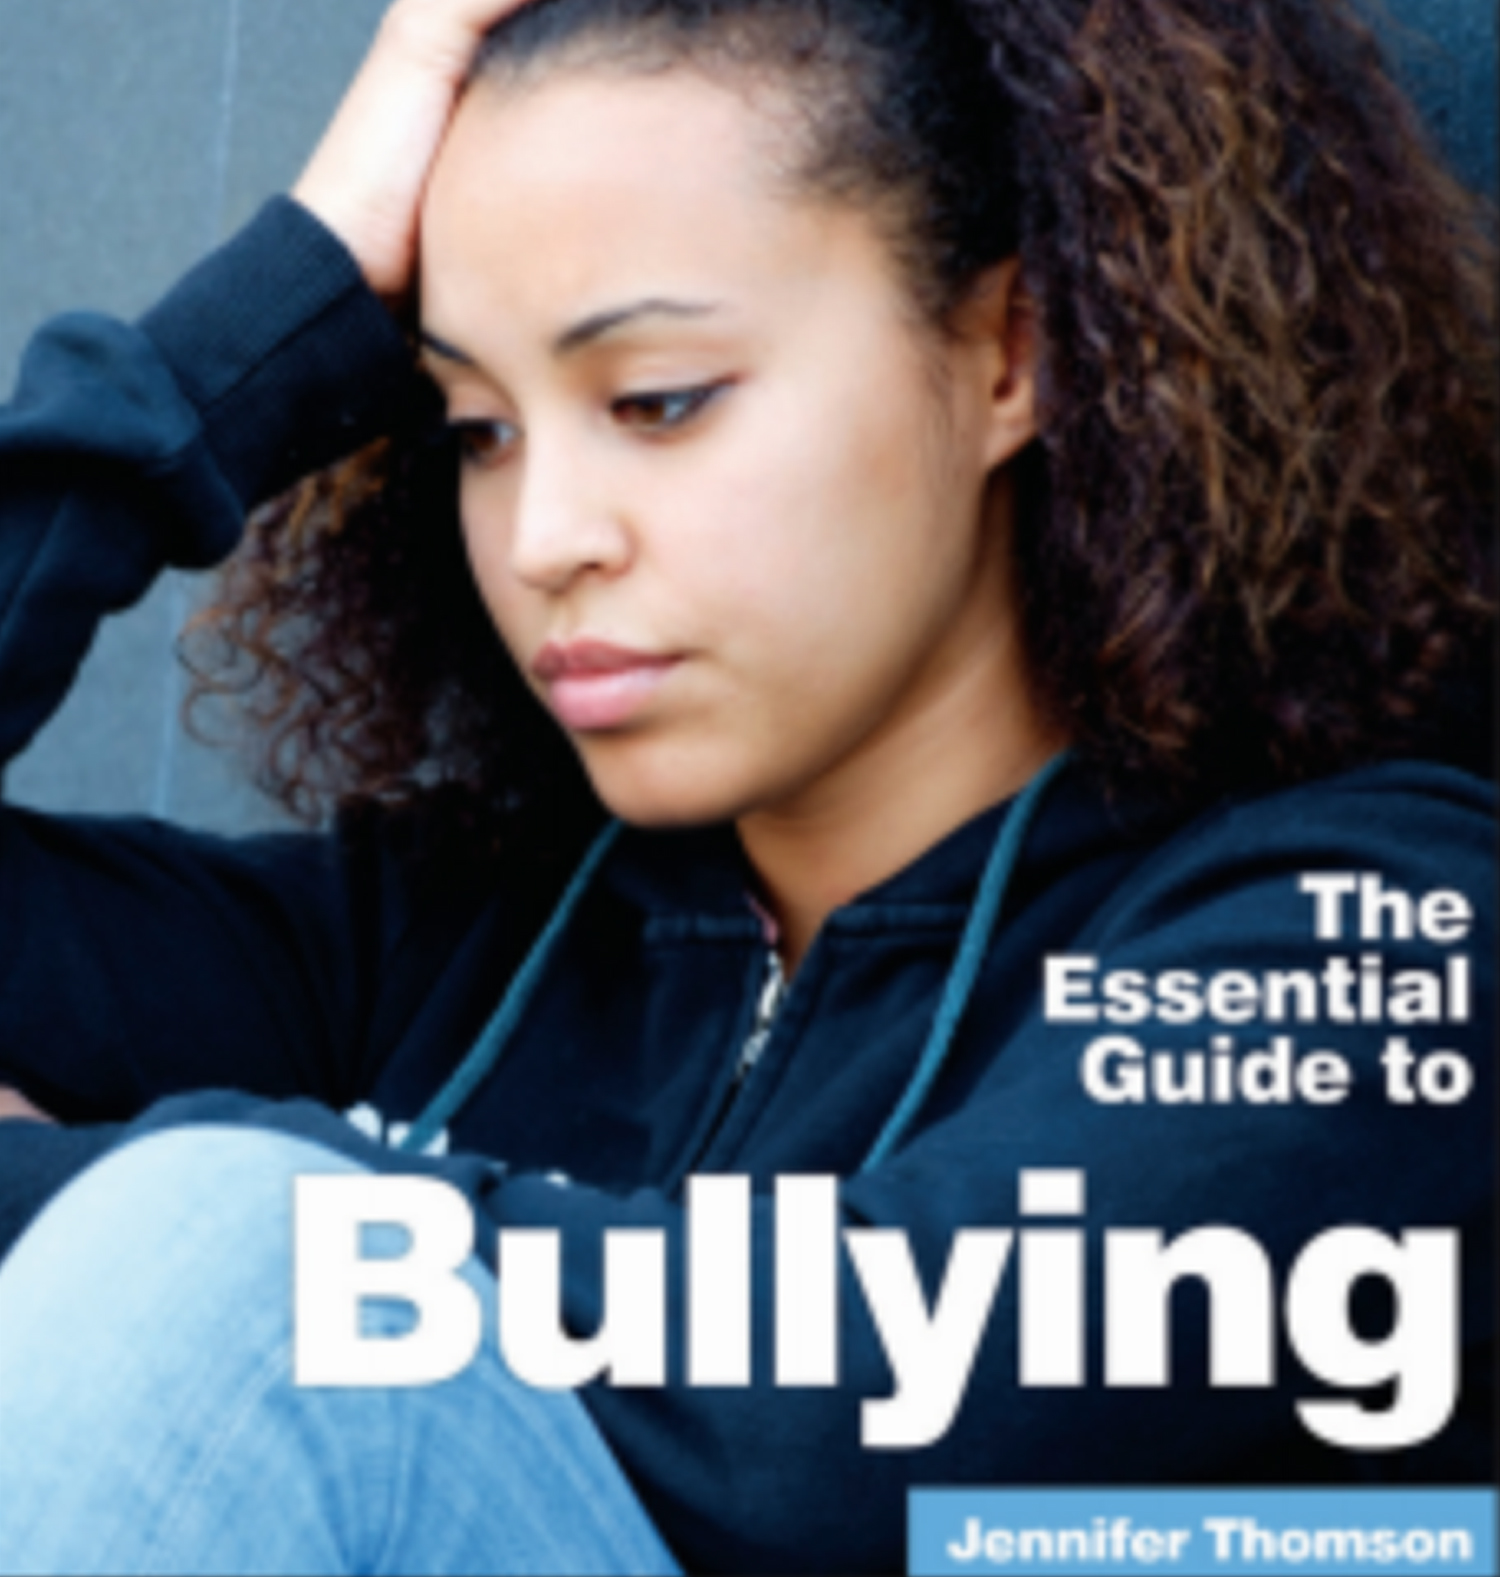 How Can You Tell That Your Children Are Being Bullied?